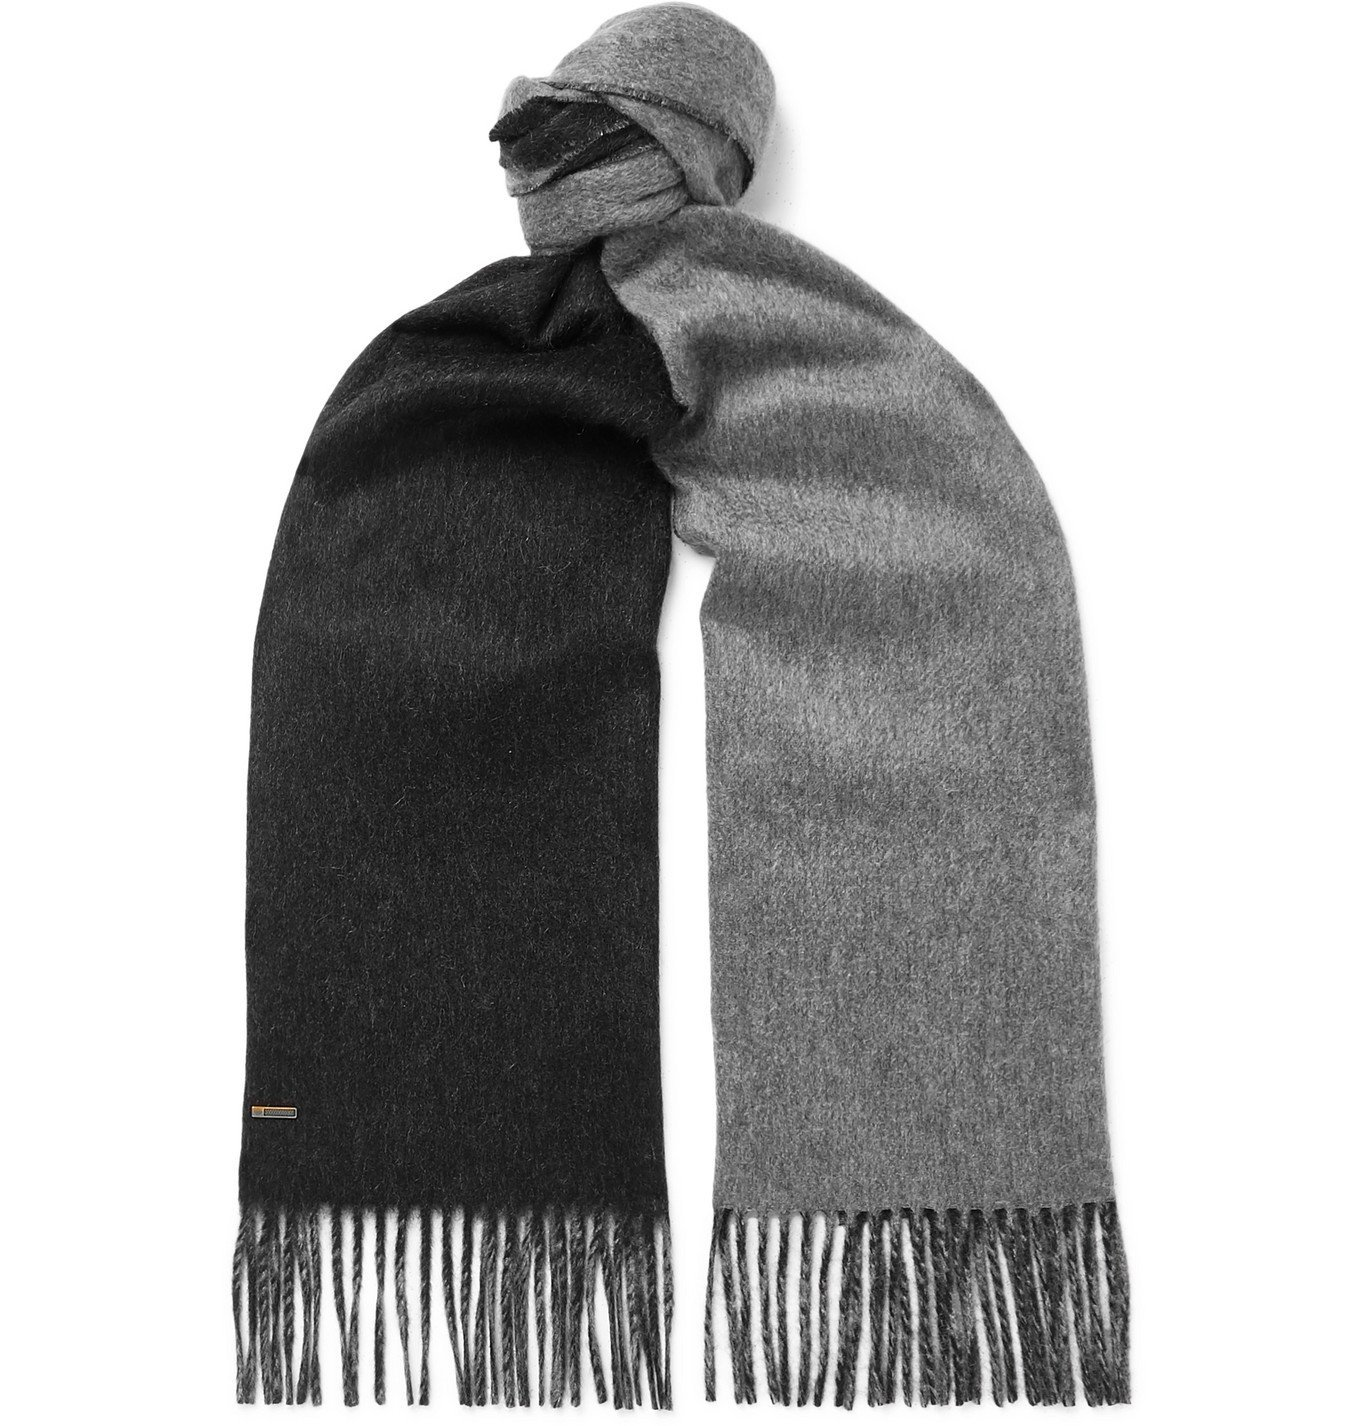 Dunhill - Reversible Fringed Cashmere Scarf - Gray